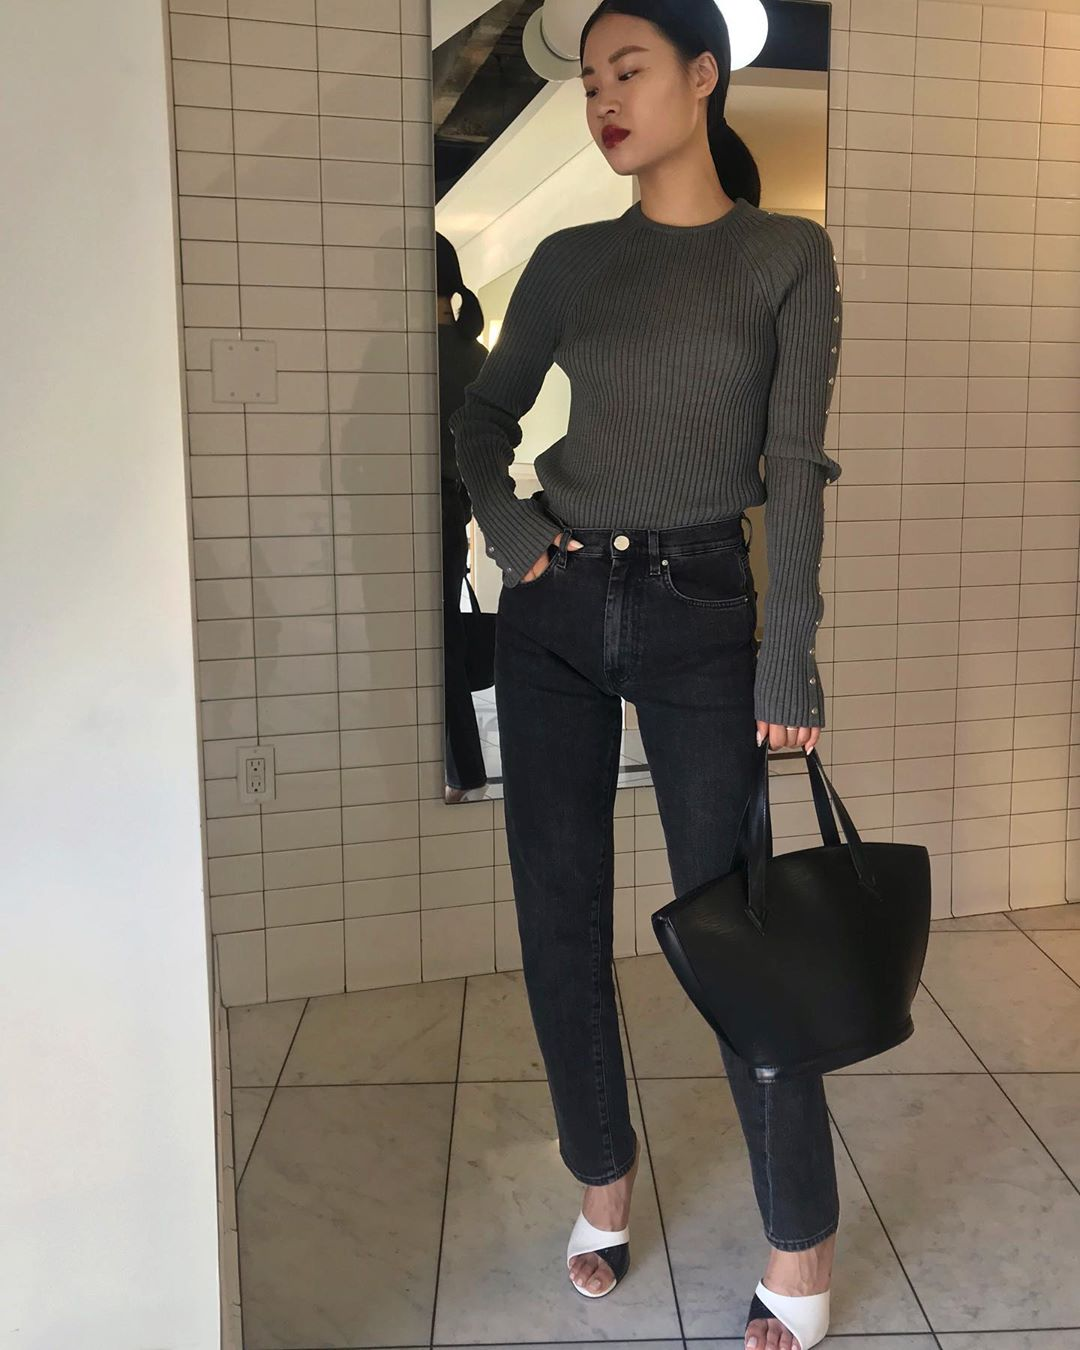 Classic Fall Outfit Inspiration – Ribbed Knit and Straight Leg Jeans